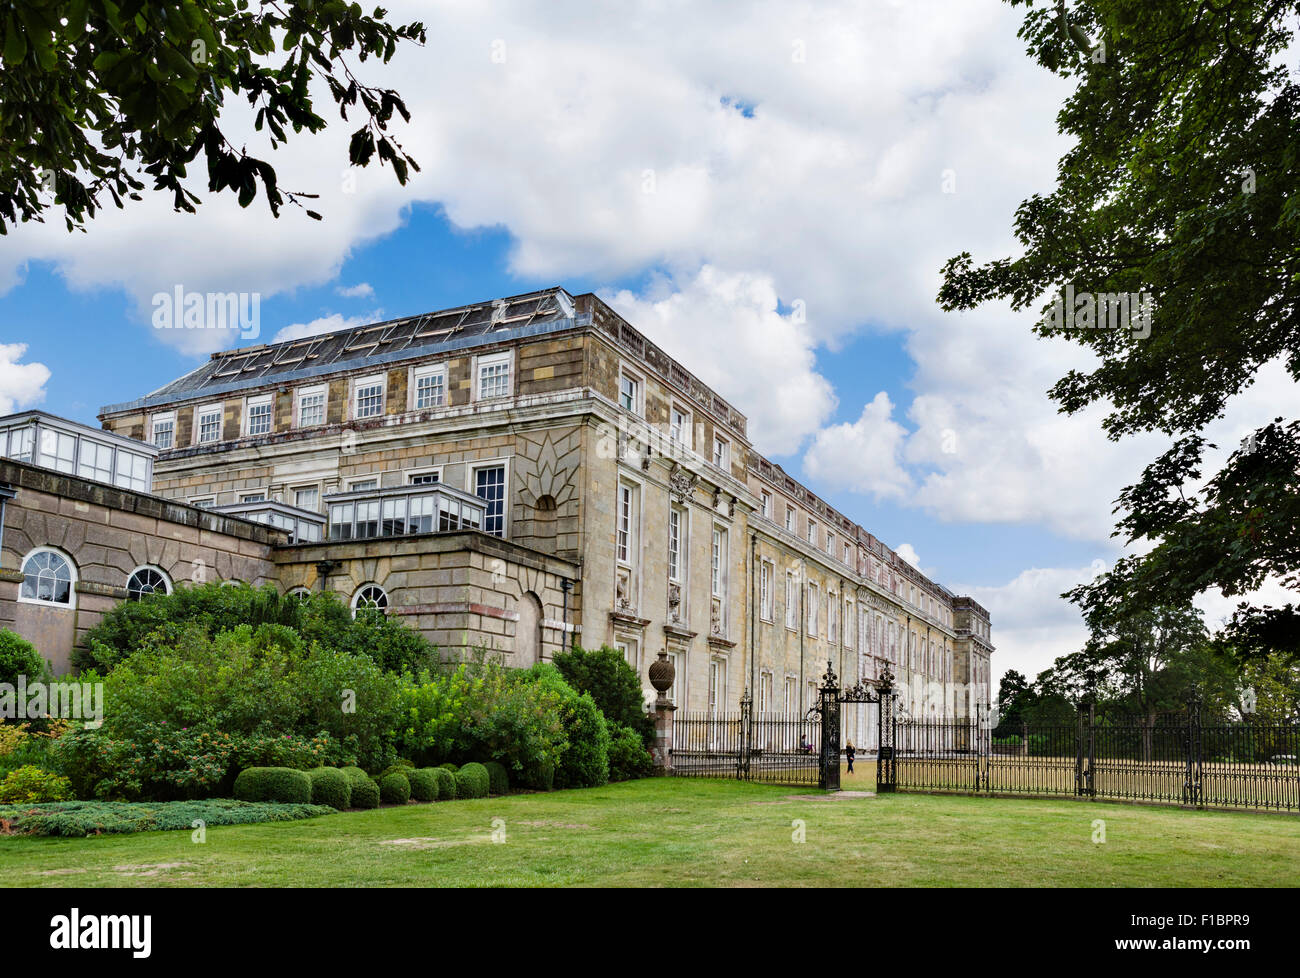 Petworth House, West Sussex, England, UK - Stock Image